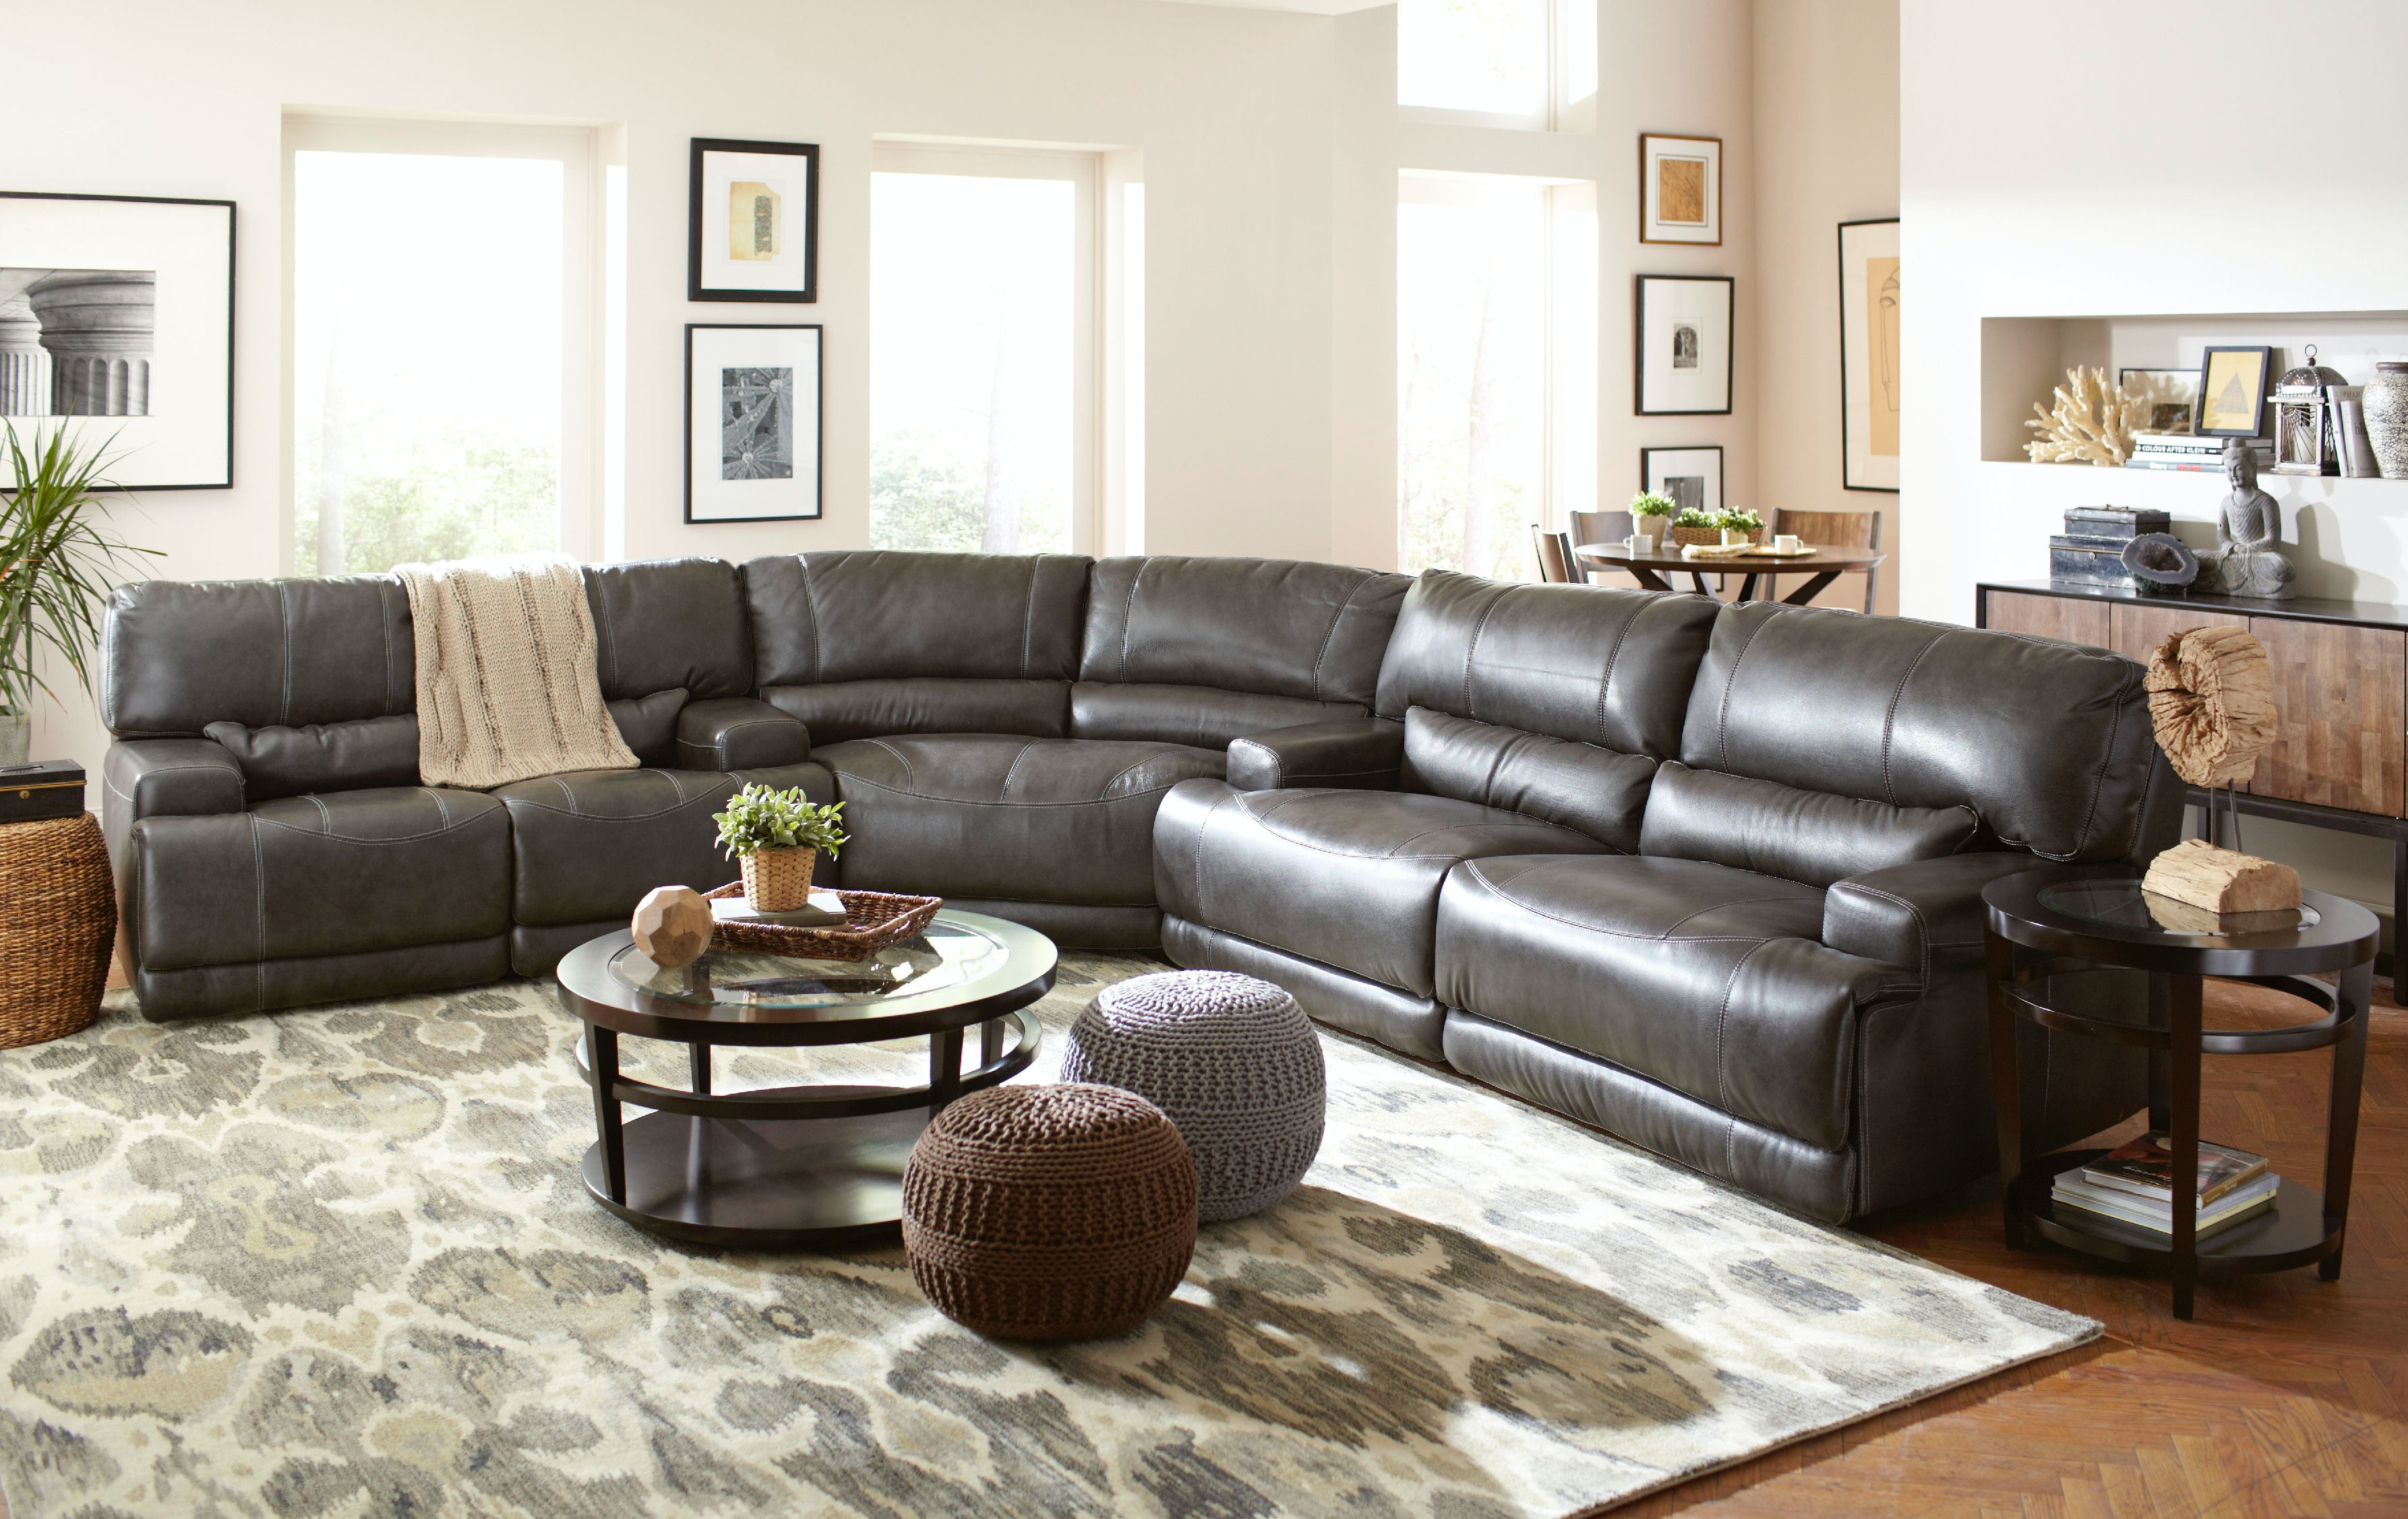 Leather Sofa At Star Furniture In Houston